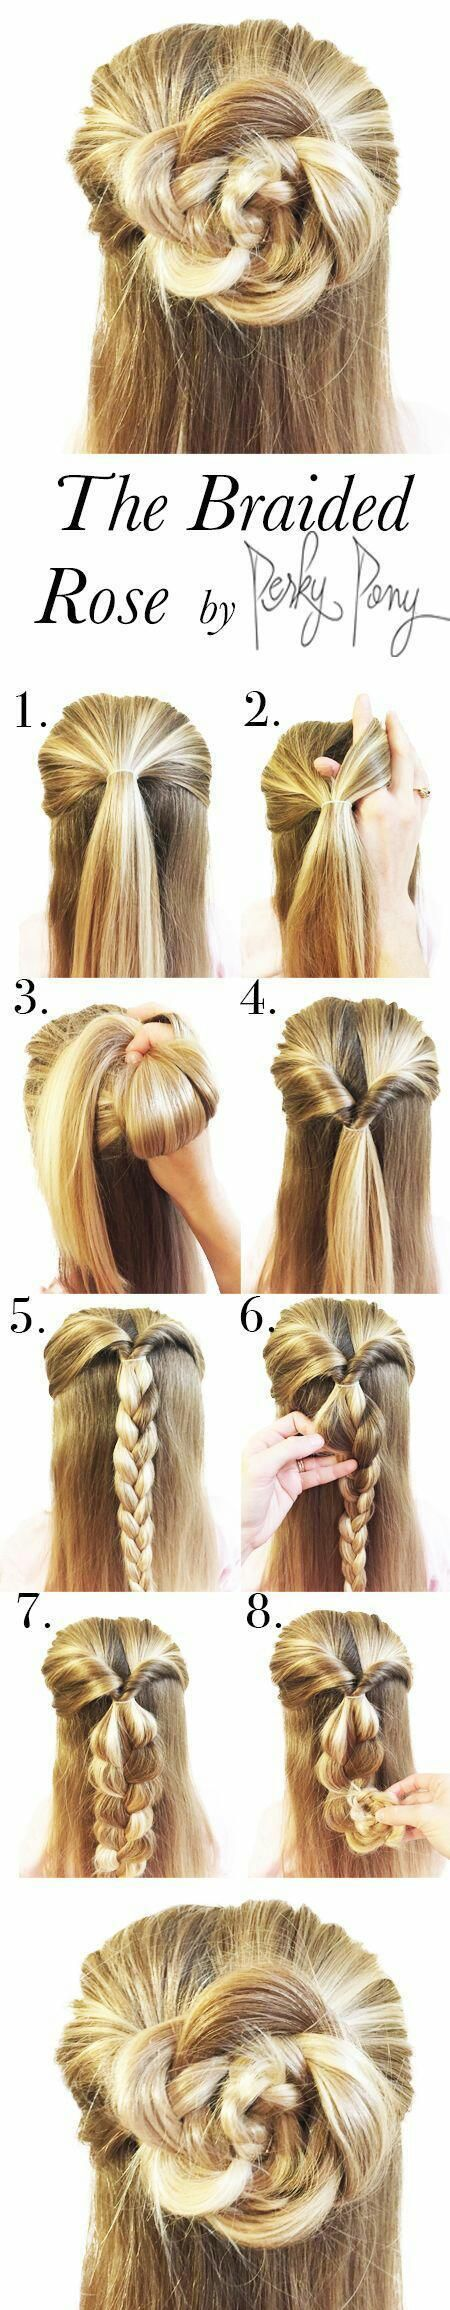 Check out this post - The braided rose half-up hairdo  on hairstyle created by Megha Sanoriya and top similar posts on hairstyle, trendy products and pictures by celebrities and other users on Roposo.